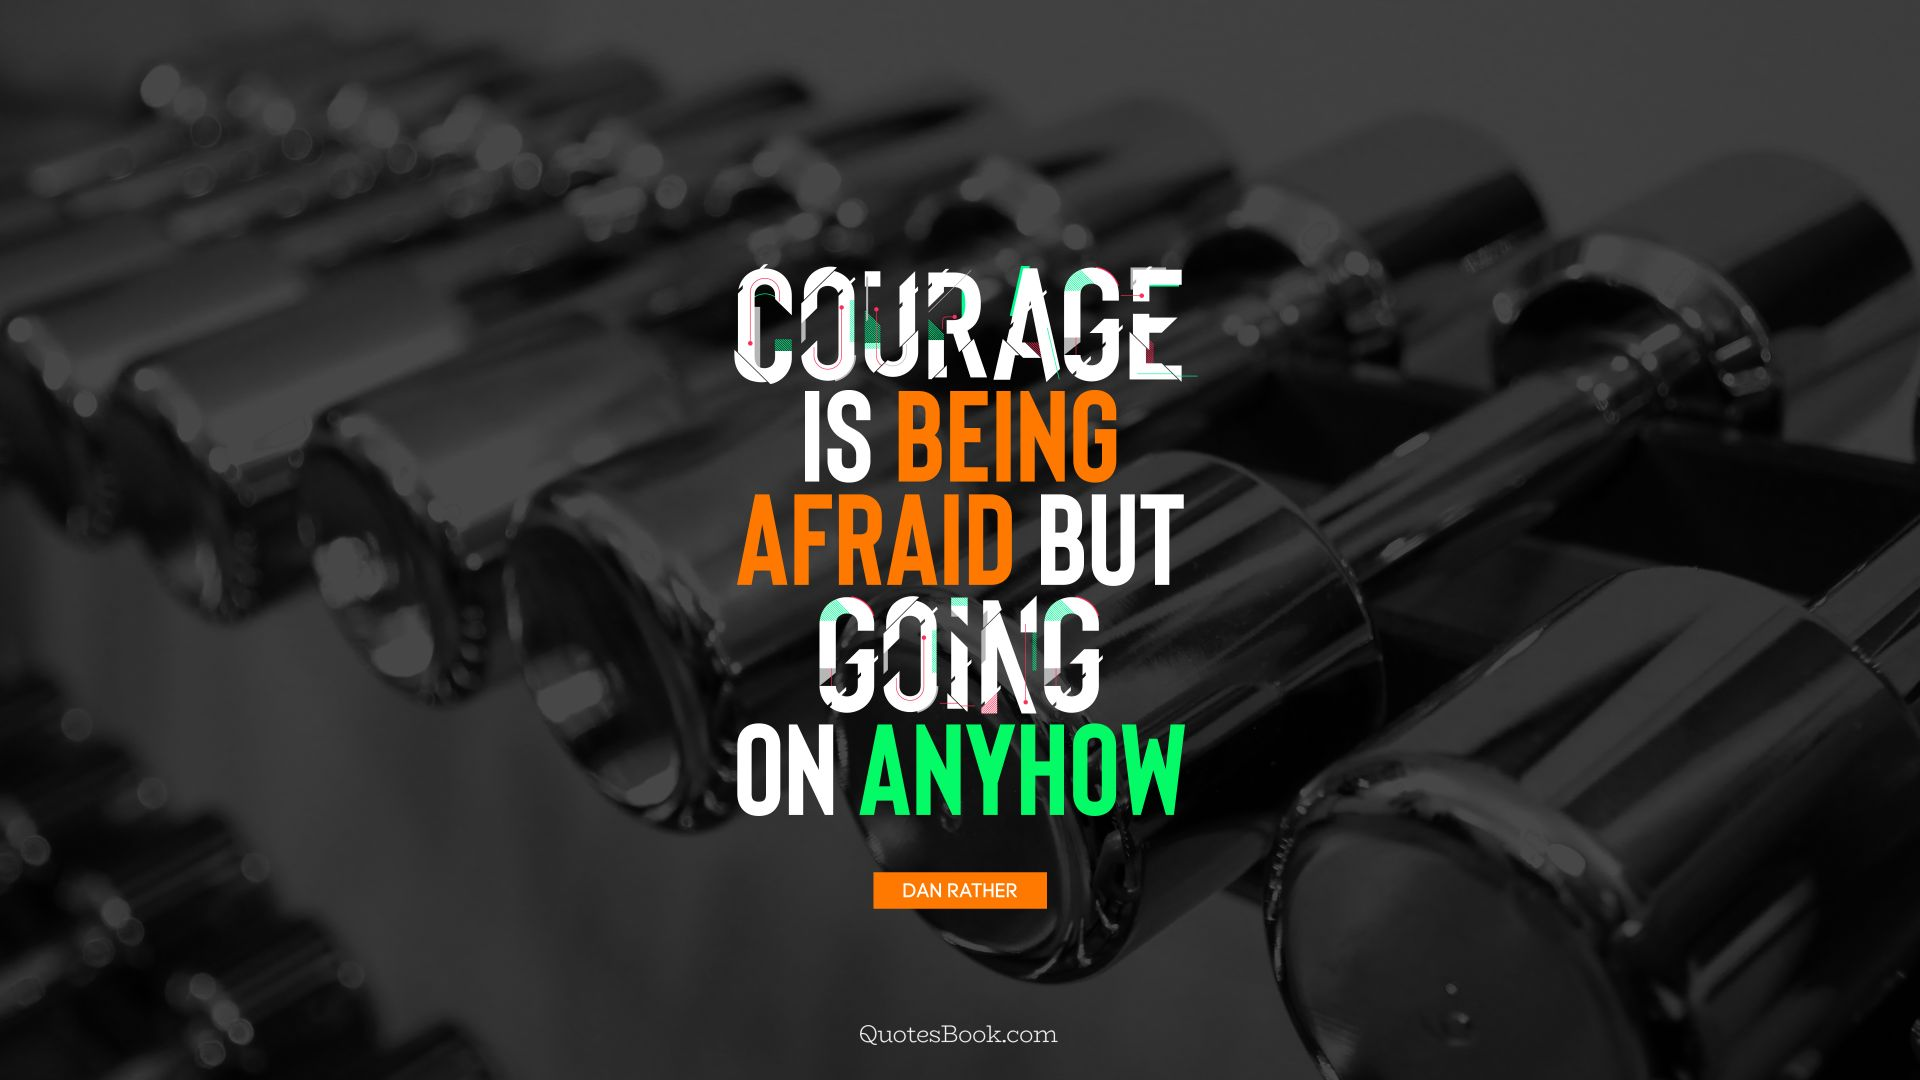 Courage is being afraid but going on anyhow. - Quote by Dan Rather